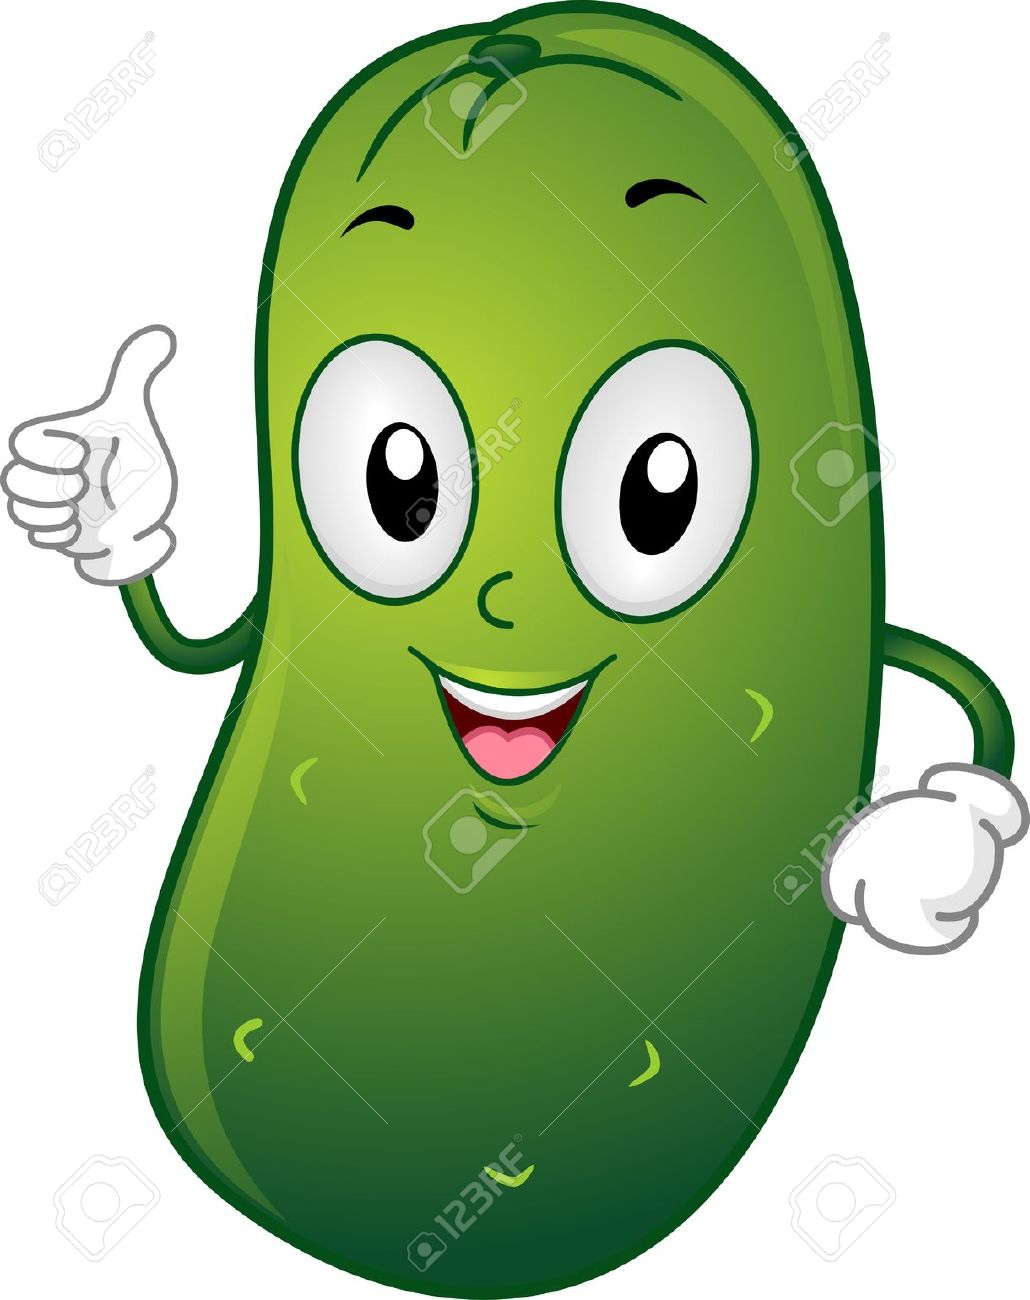 Pickle clipart. Funny